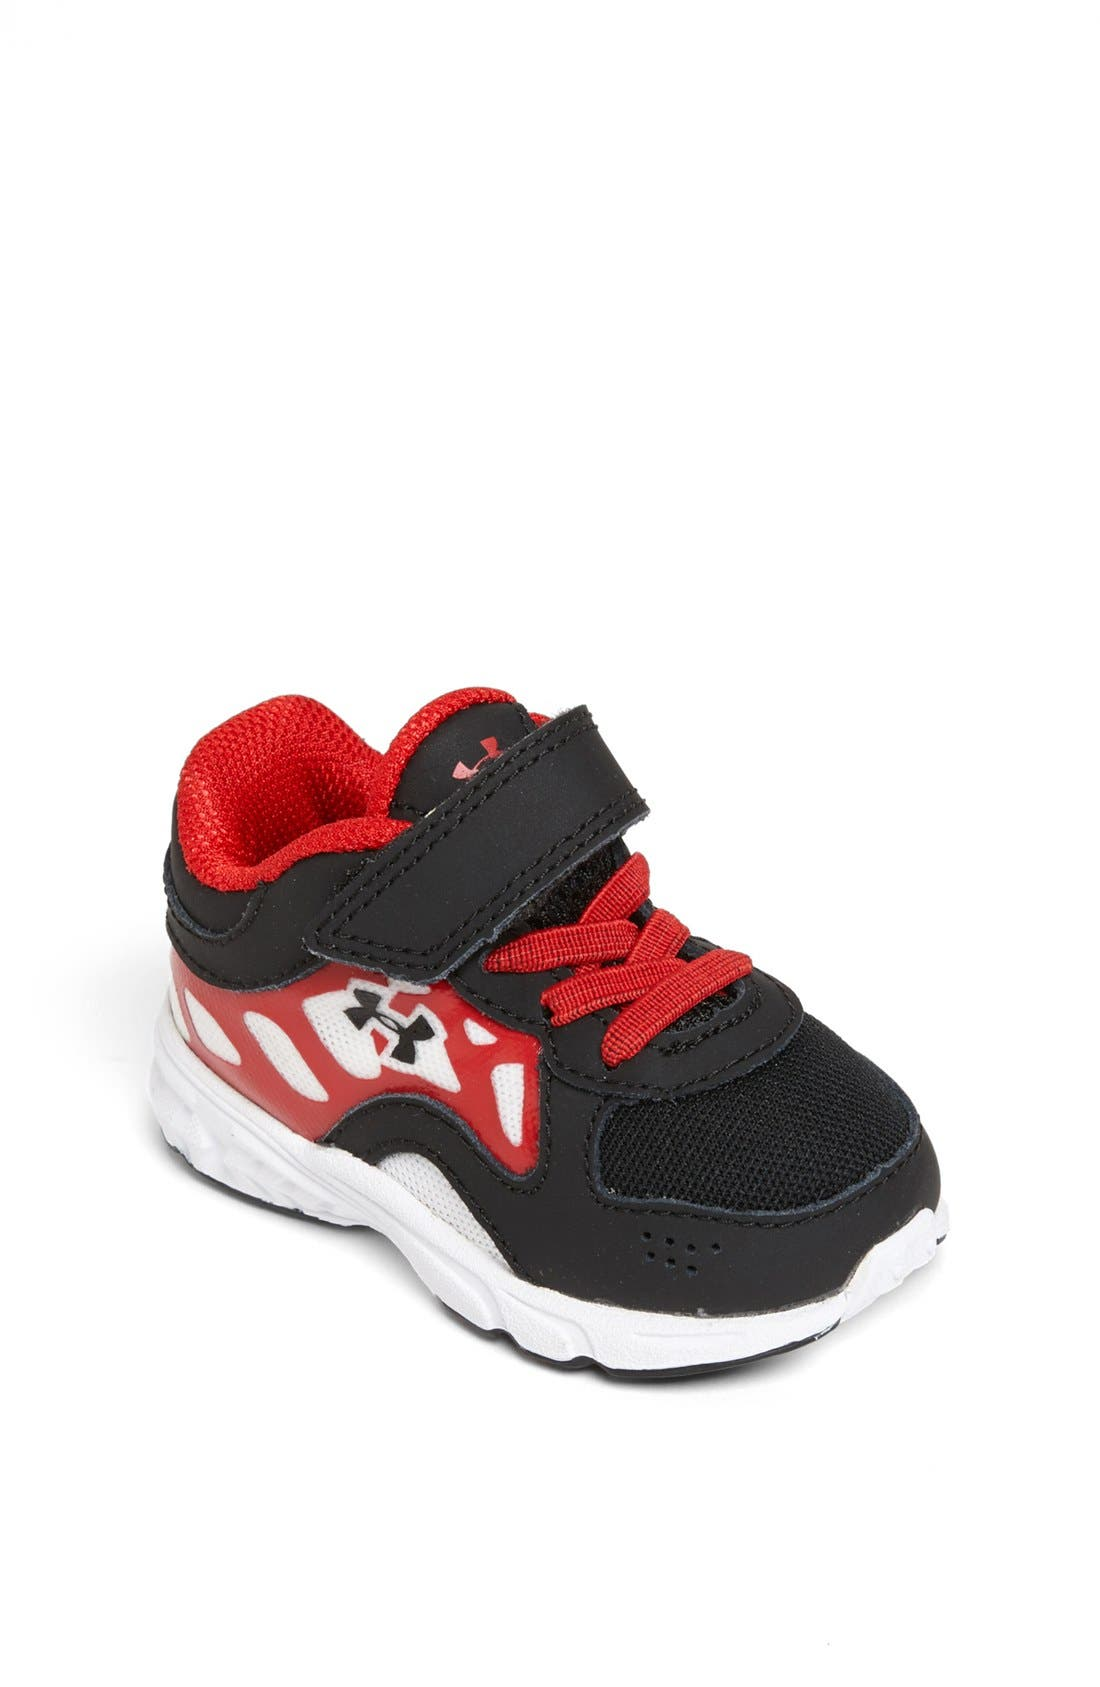 Main Image - Under Armour 'Ignite' Sneaker (Baby, Walker & Toddler)